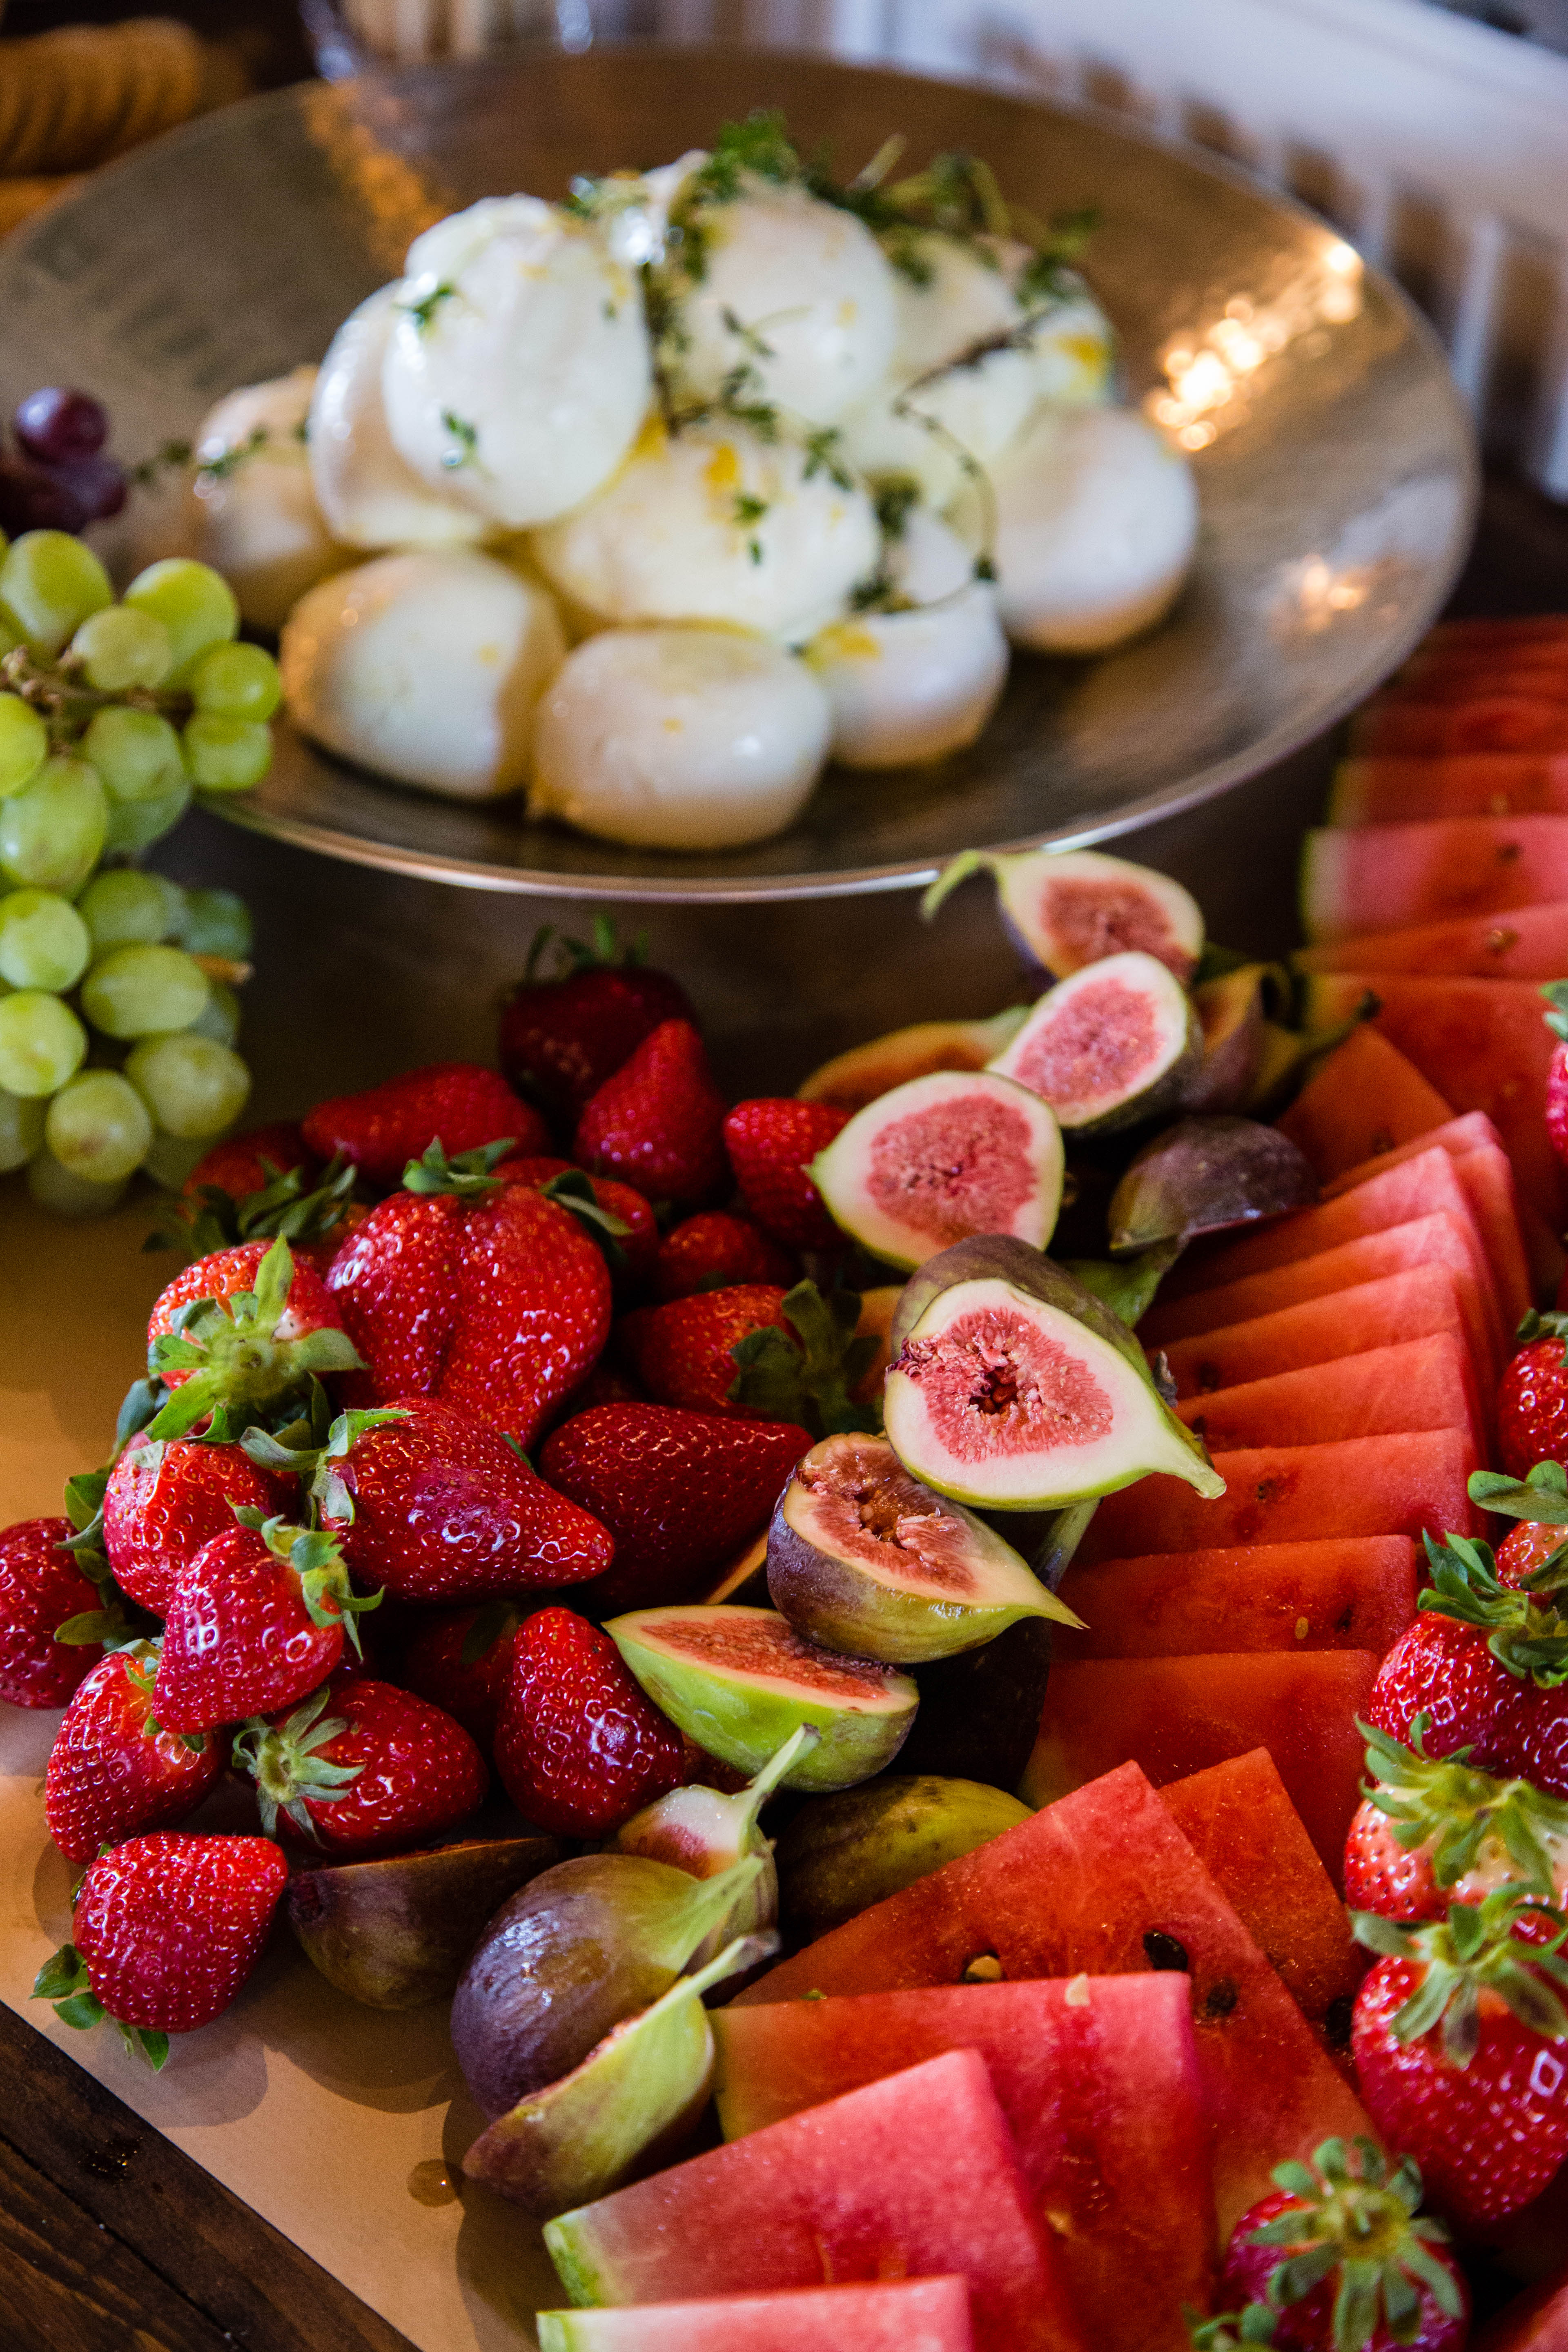 Quality Ingredients, Fresh Fruit Platter with Mozzarella Balls